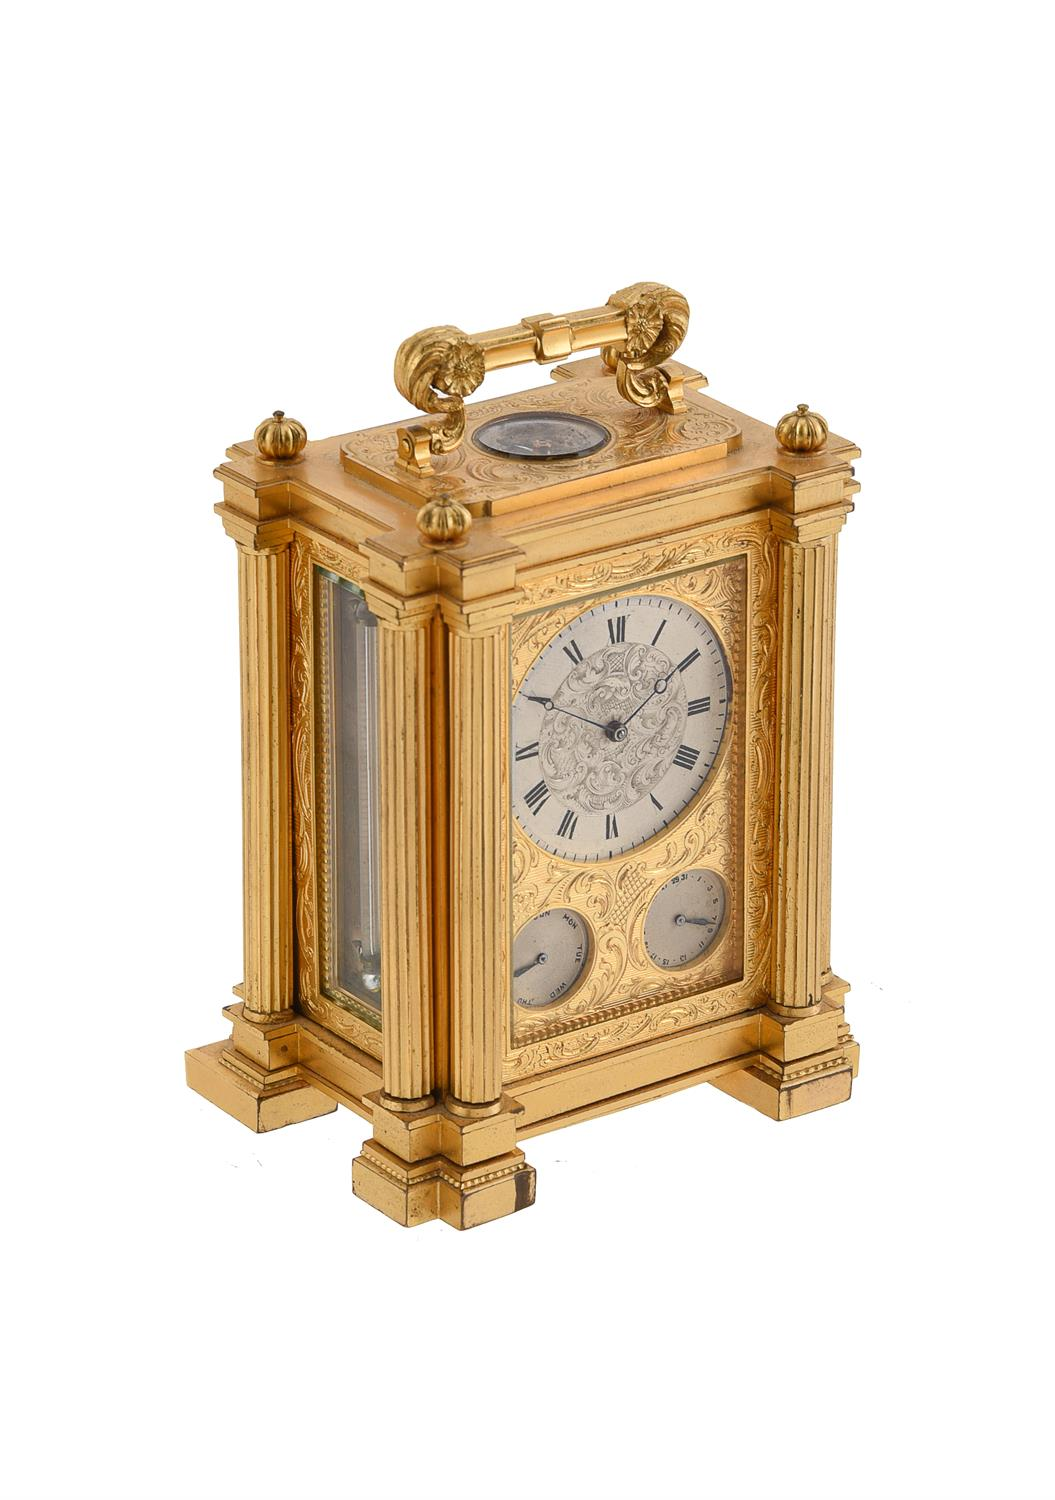 A fine small early Victorian engraved gilt brass small calendar carriage timepiece with twin thermom - Image 8 of 14